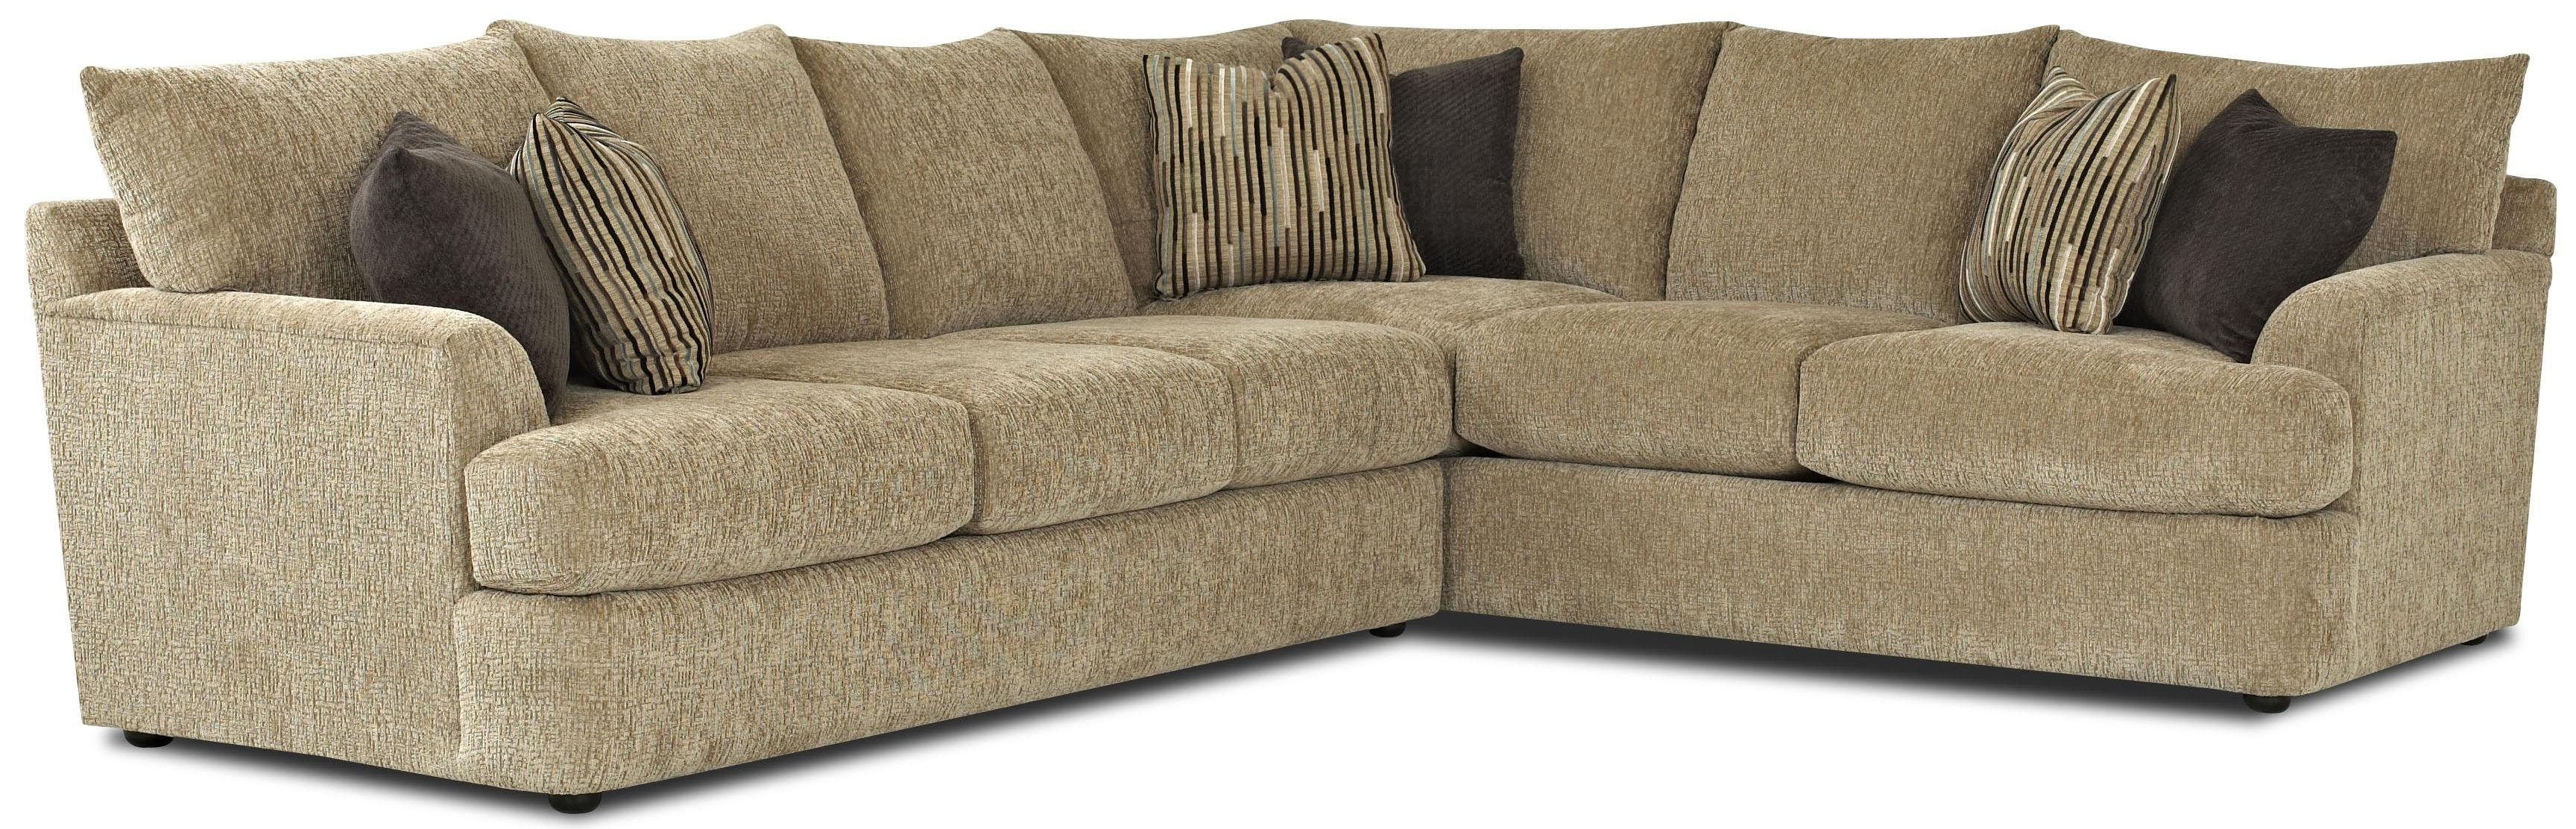 Contemporary L Shaped Sectional Sofaklaussner (View 6 of 15)